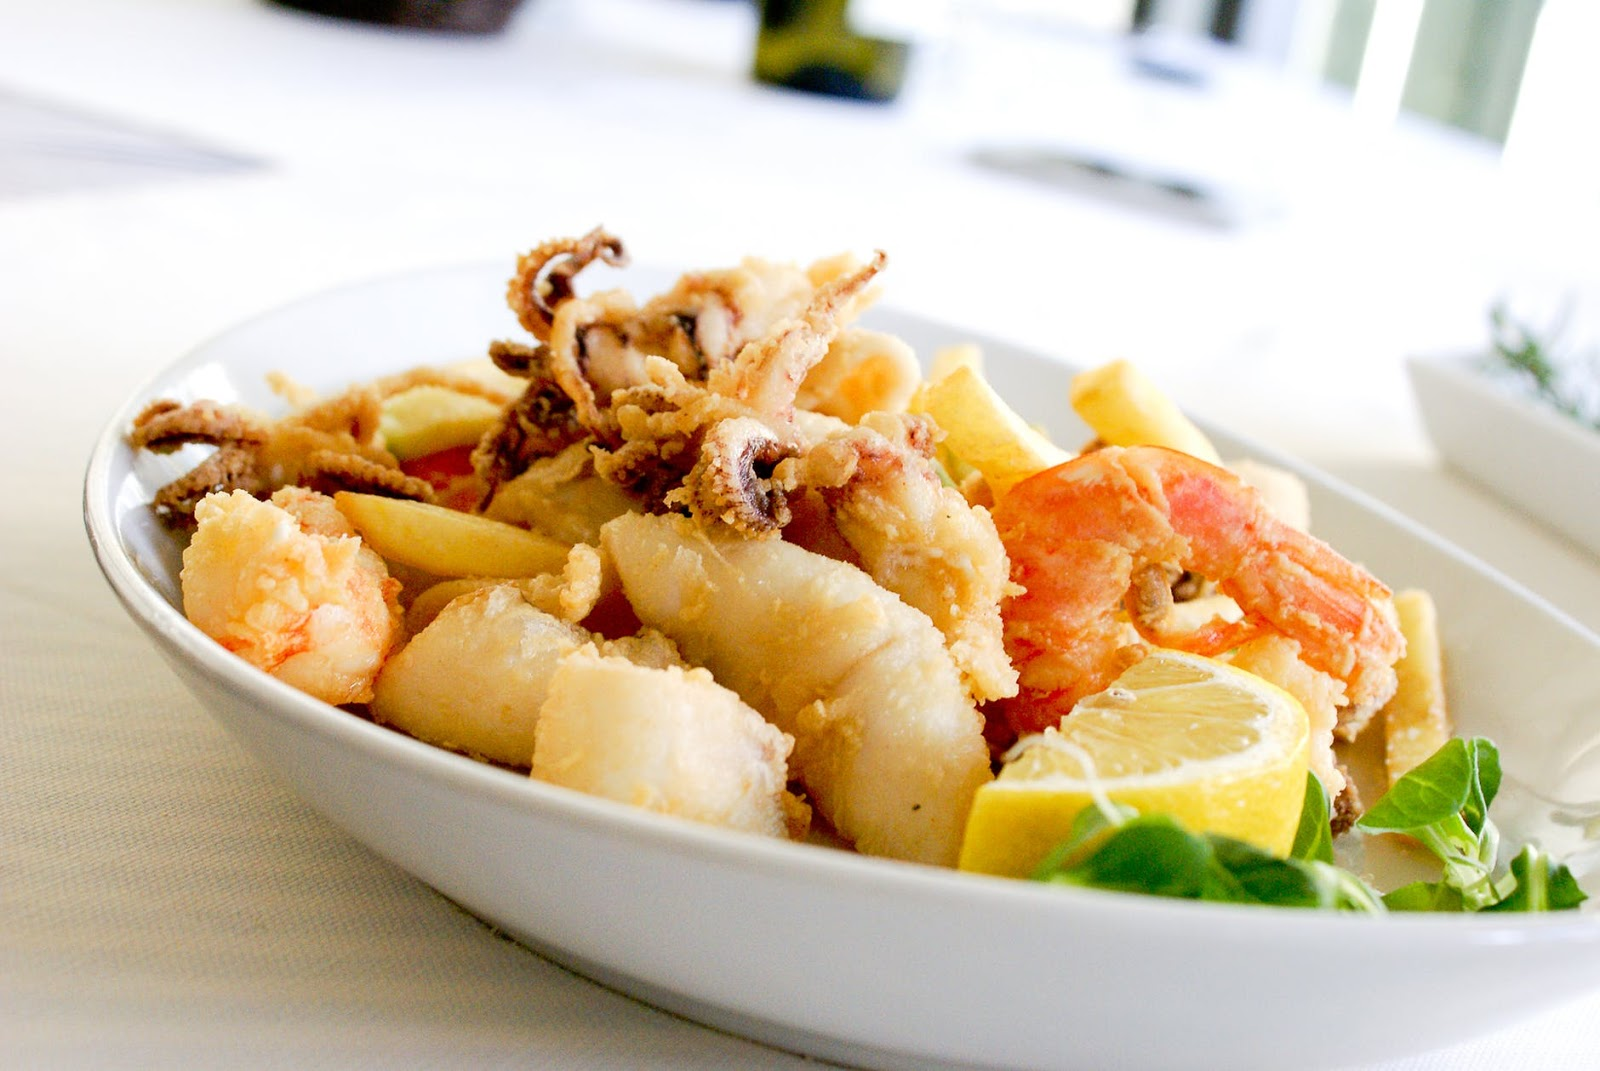 seafood dish with calamari and shrimp from Captain's Point